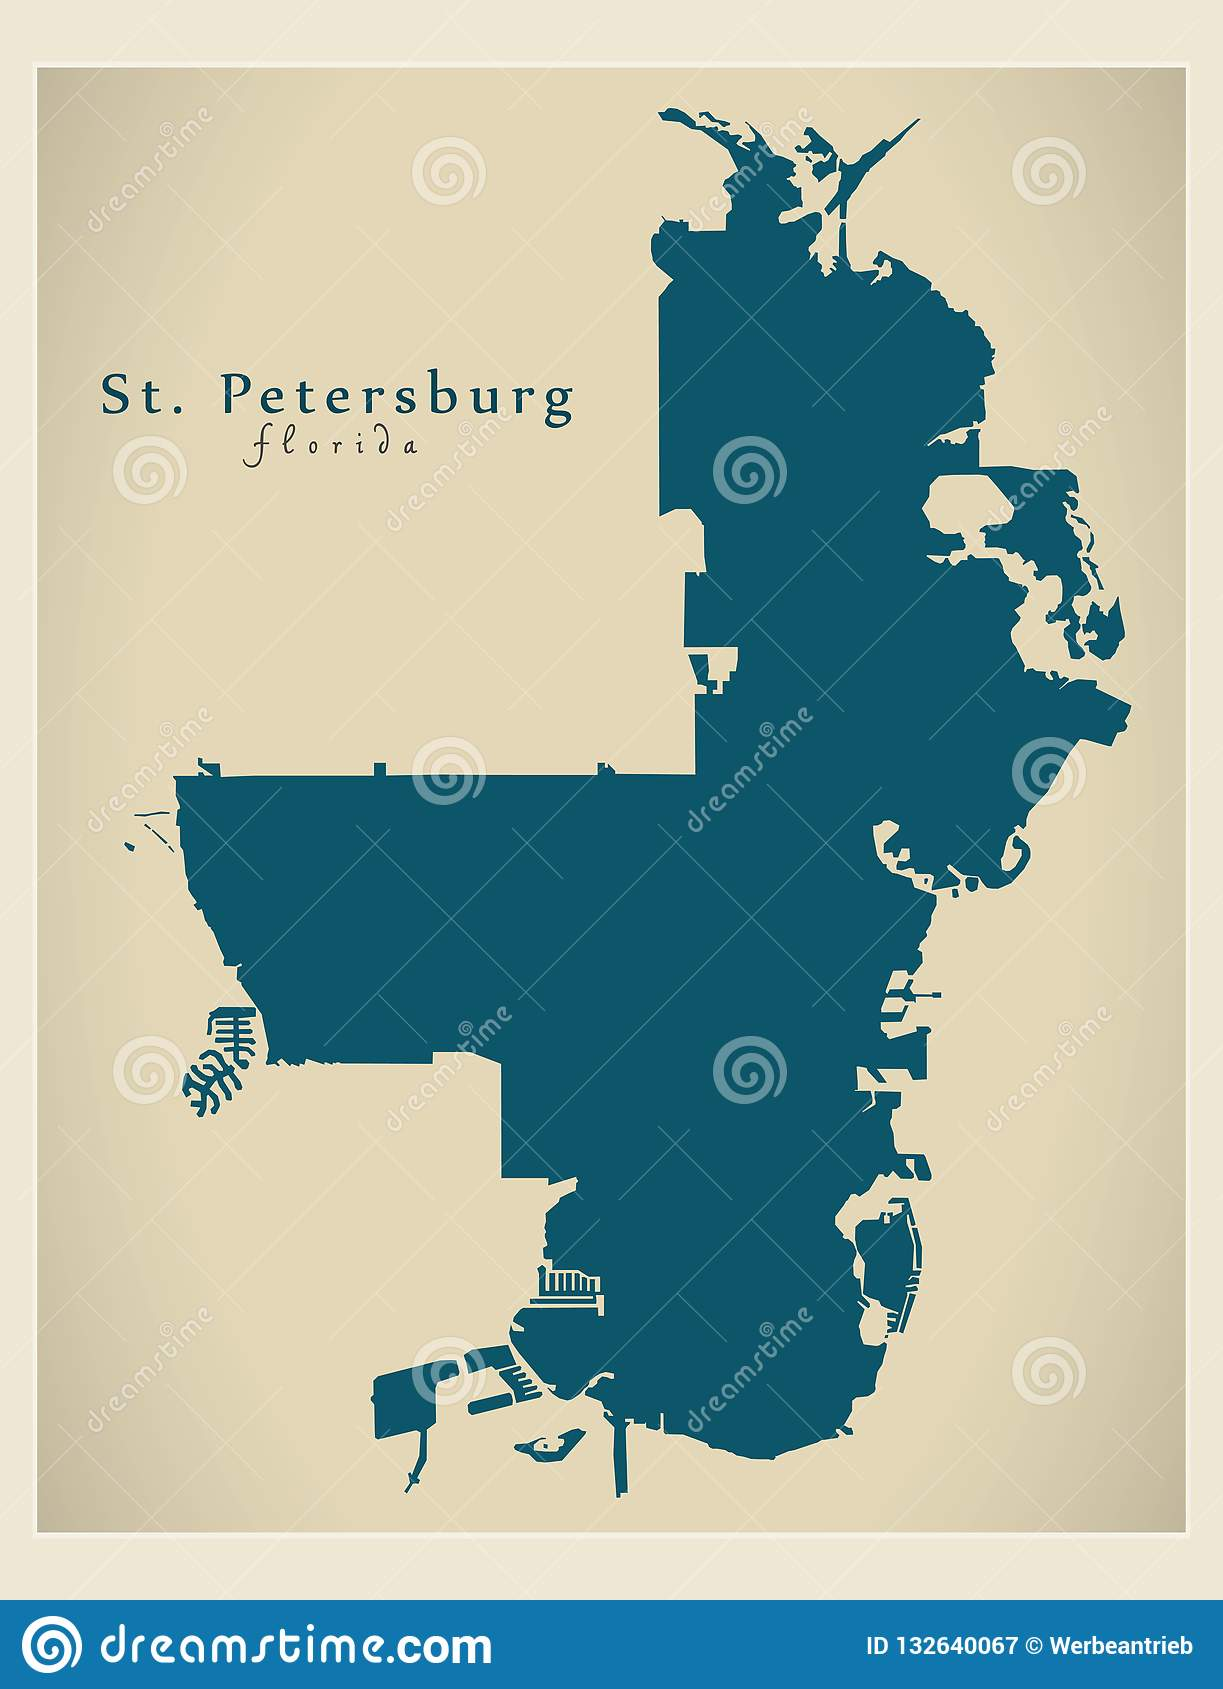 Florida City Map.Modern City Map St Petersburg Florida City Of The Usa Stock